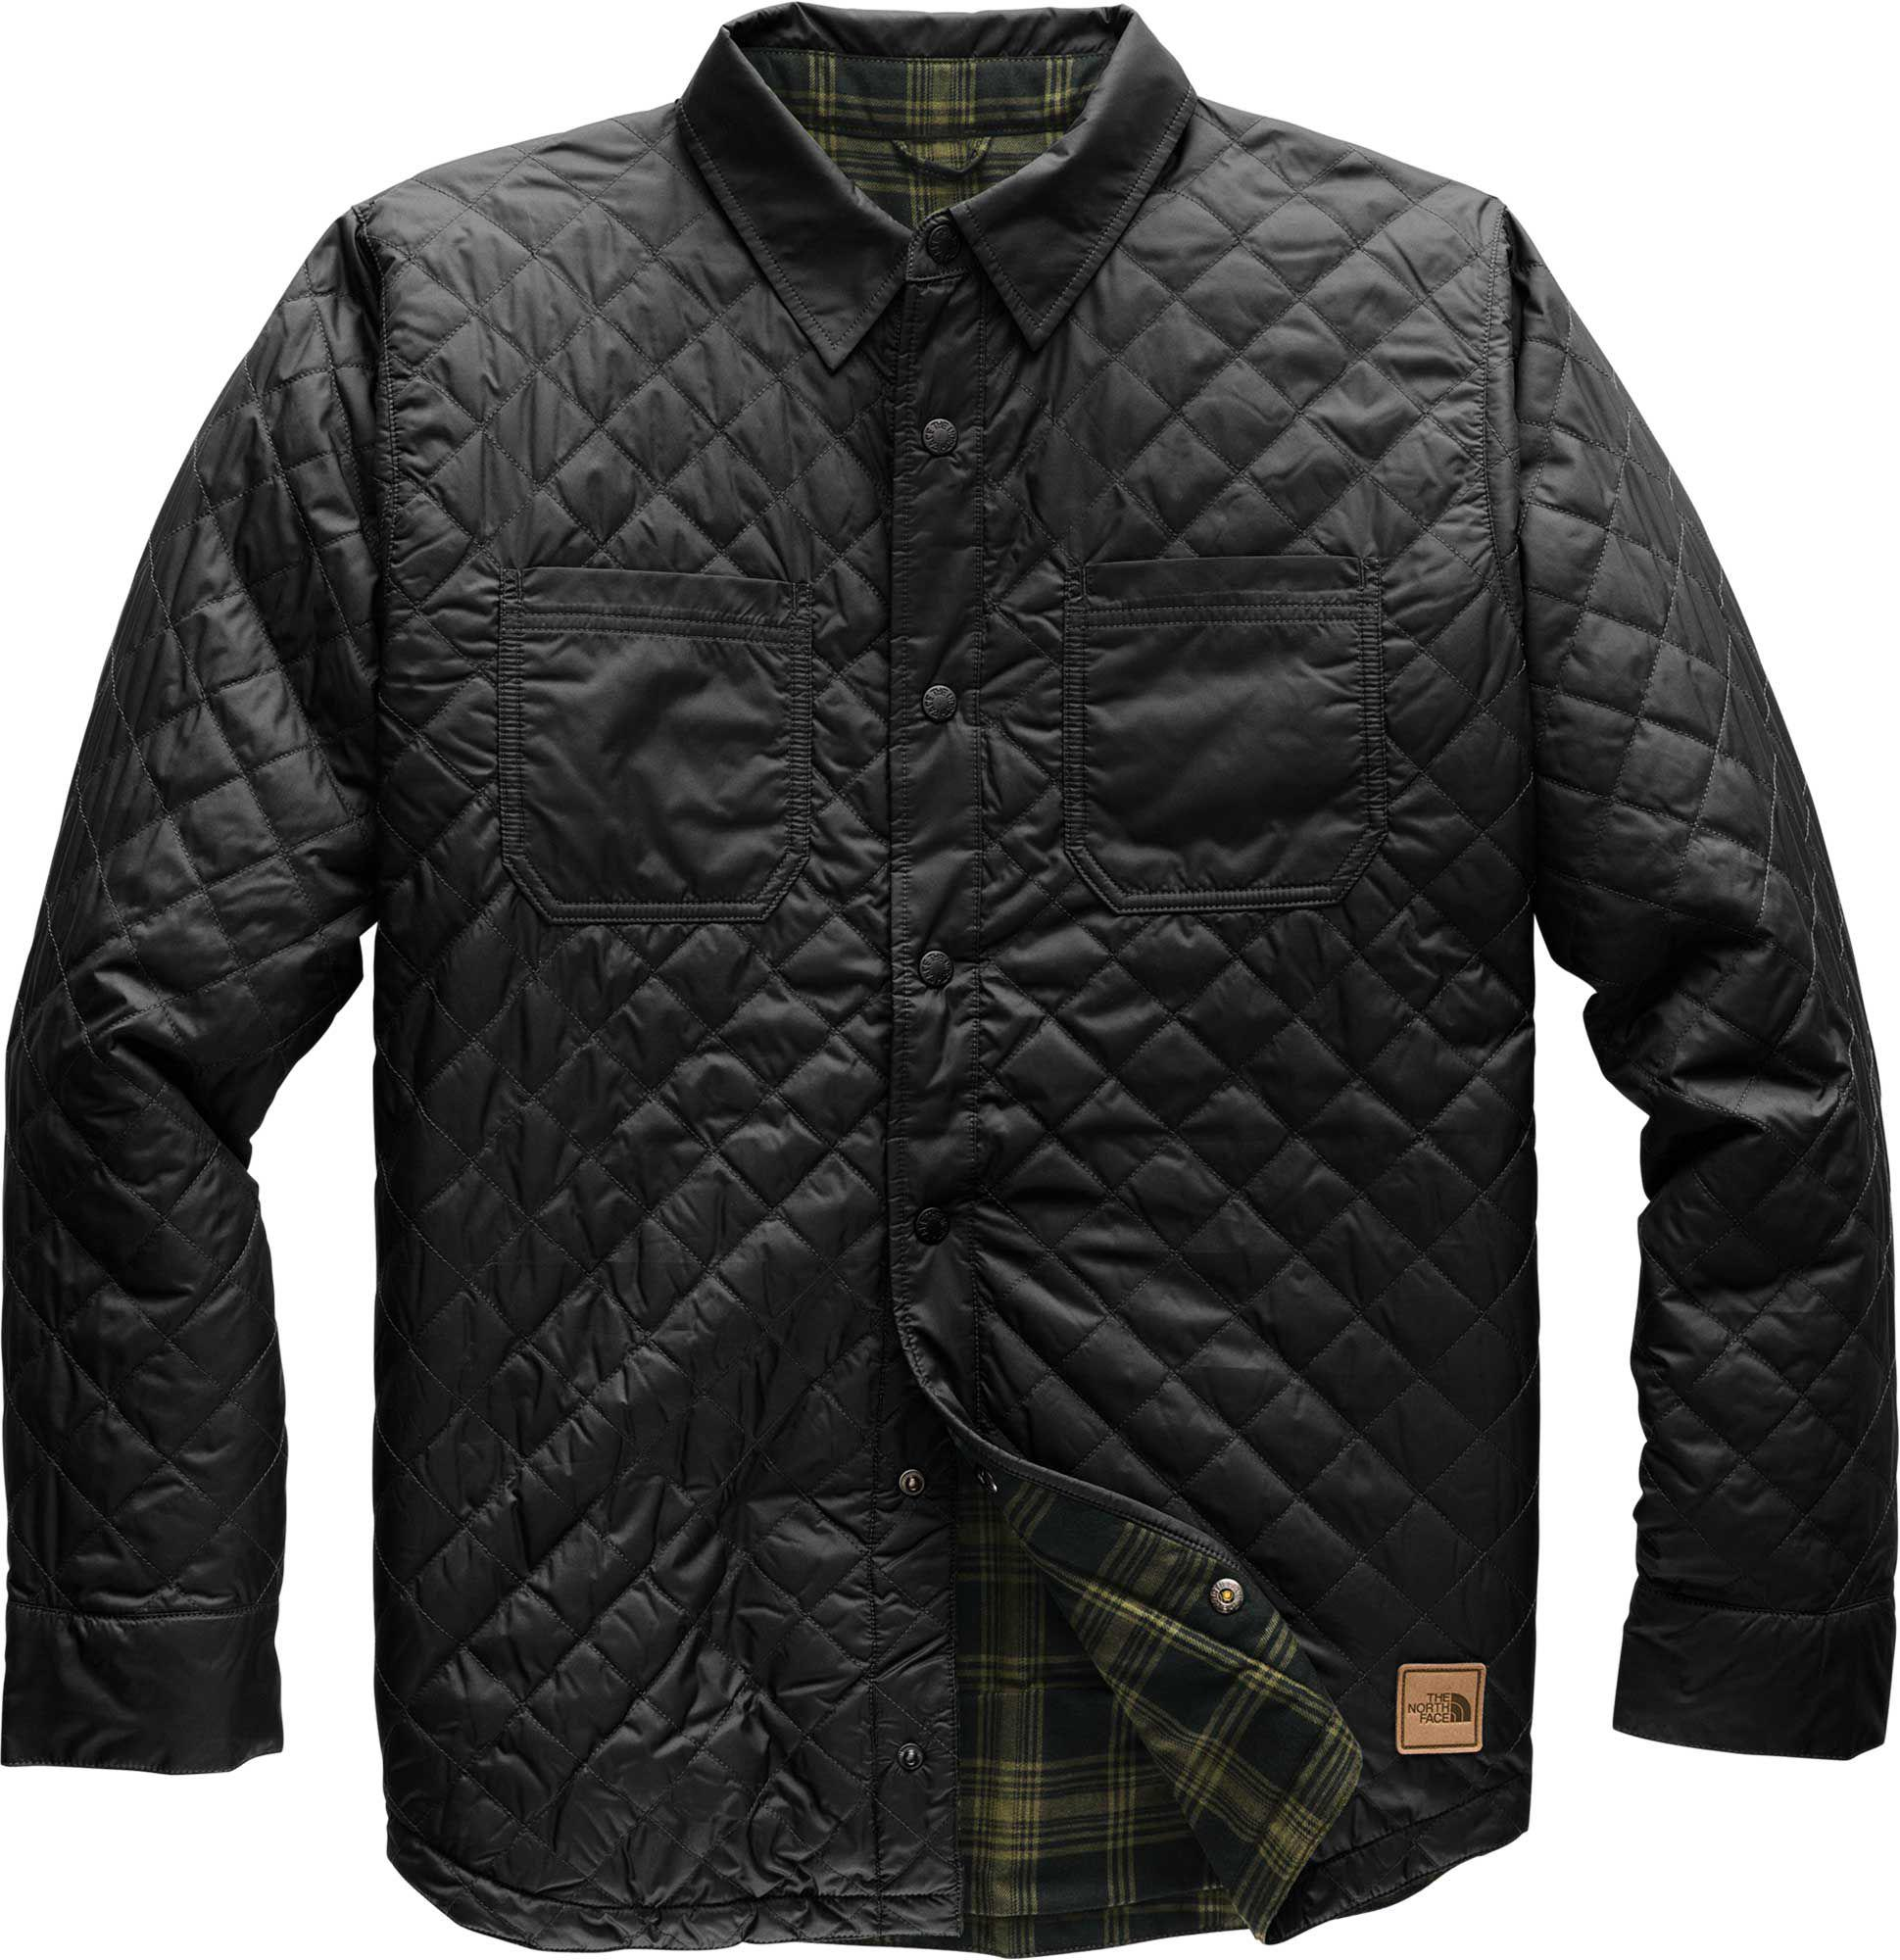 59de7b3c4 The North Face Fort Point Insulated Reversible Flannel in Black for ...